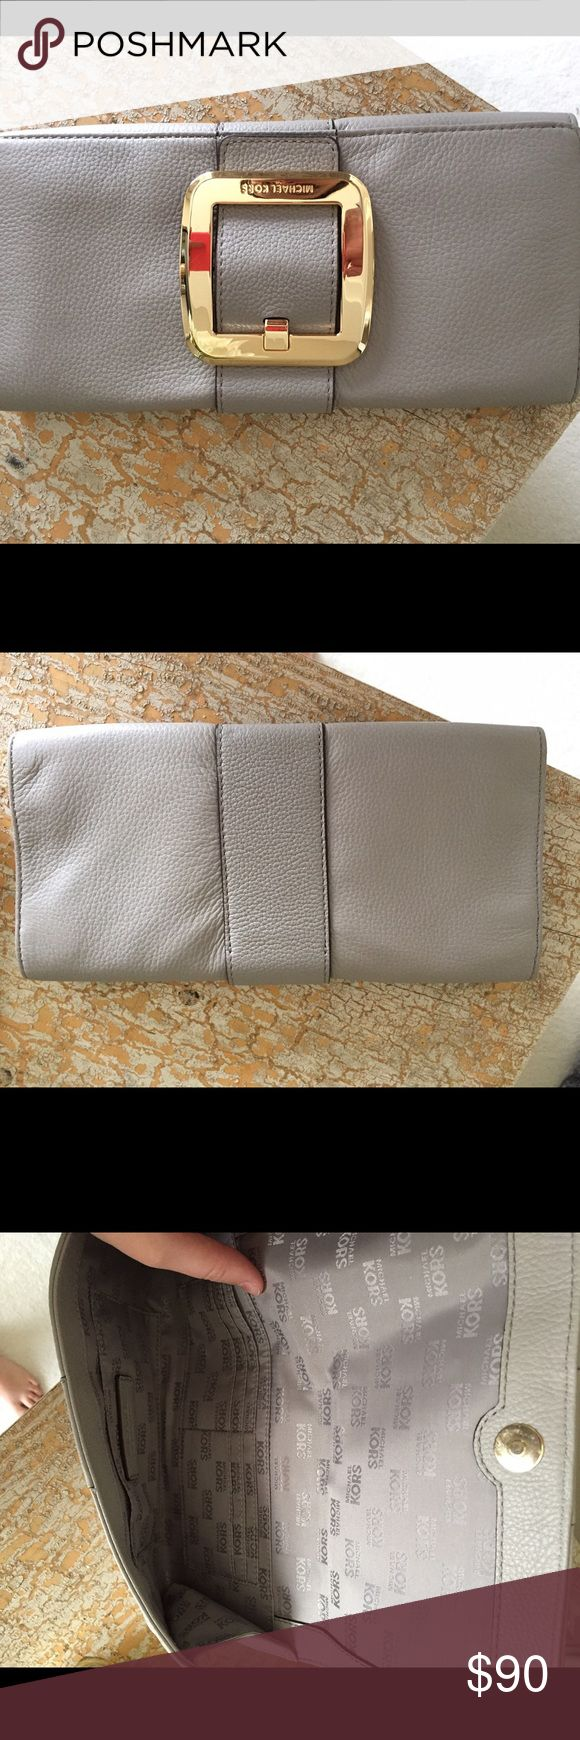 Michael kors clutch Grey clutch with gold buckle. Great condition used only once. Perfect for evening events or weddings! Color is neutral so you can pair with anything. Michael Kors Bags Clutches & Wristlets